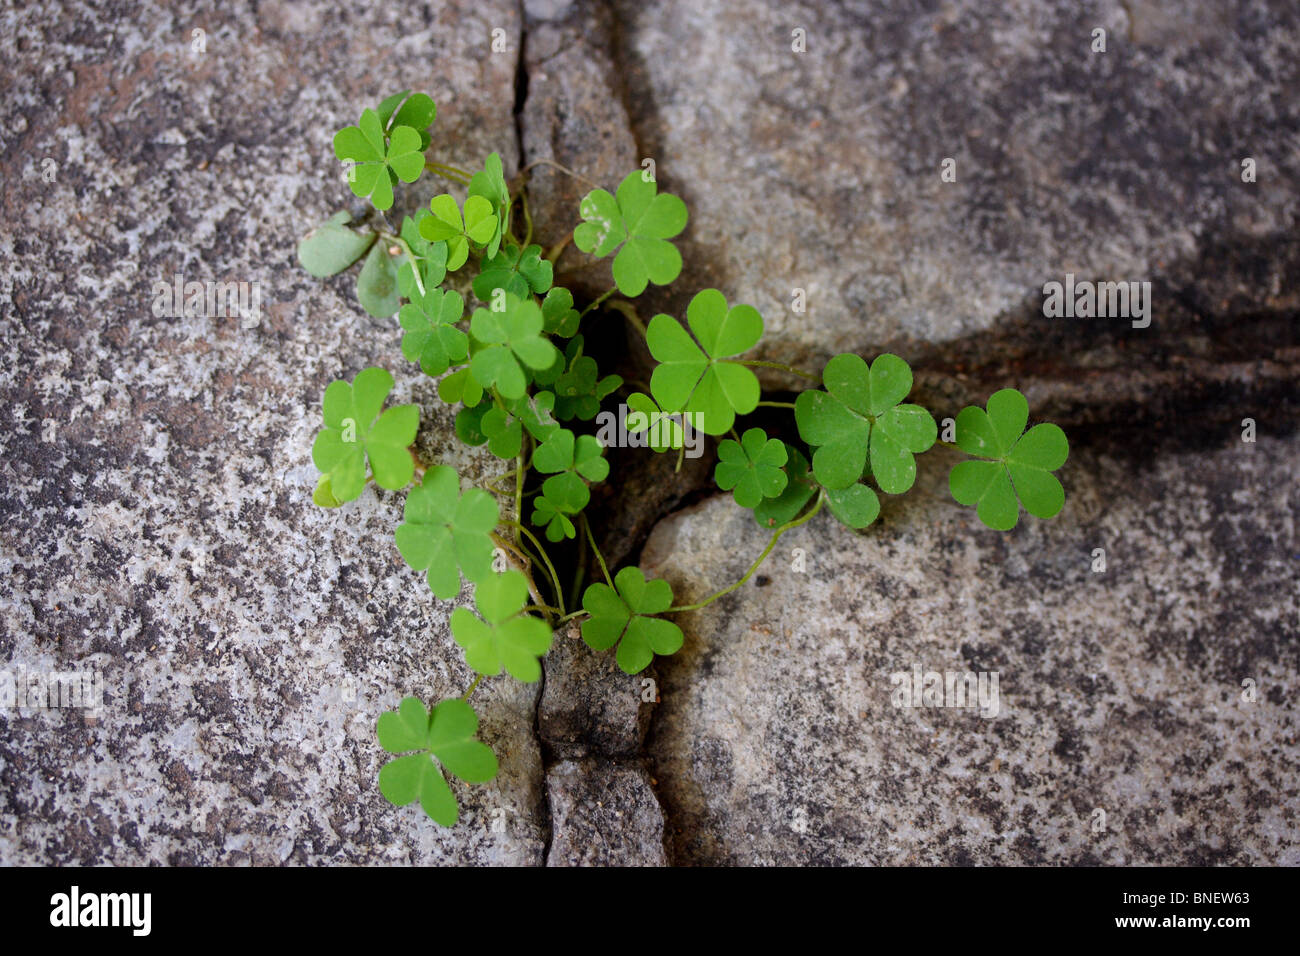 Clovers growing from rock cracks - Stock Image